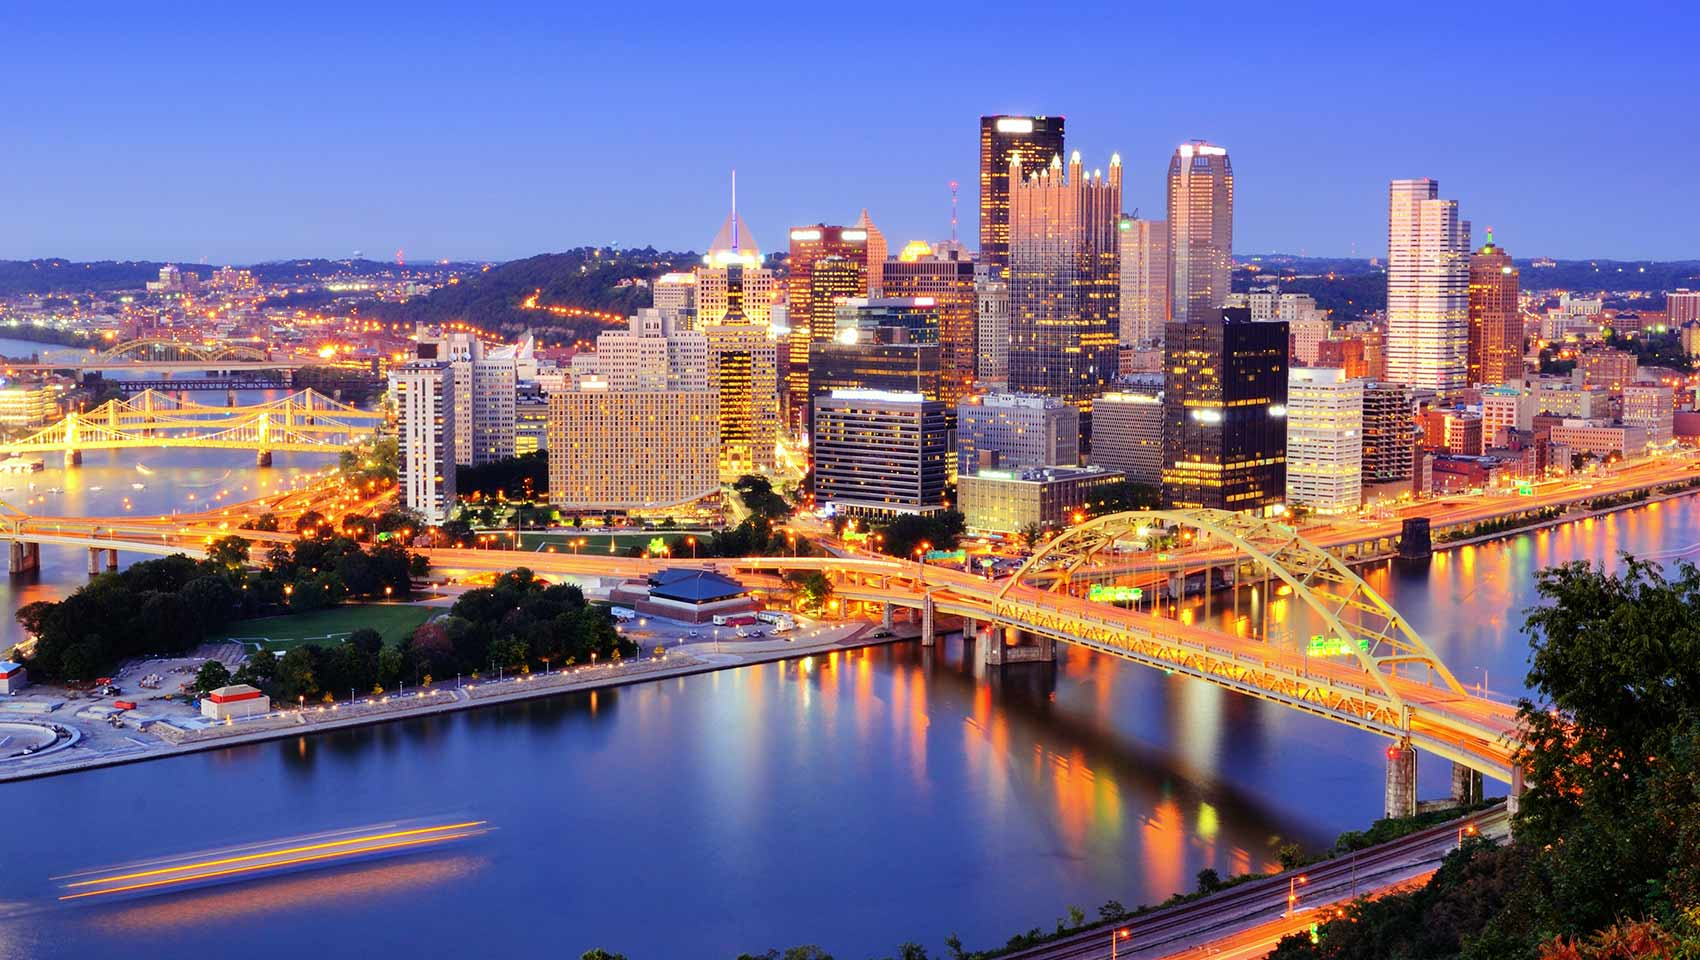 The skyline of Pittsburgh